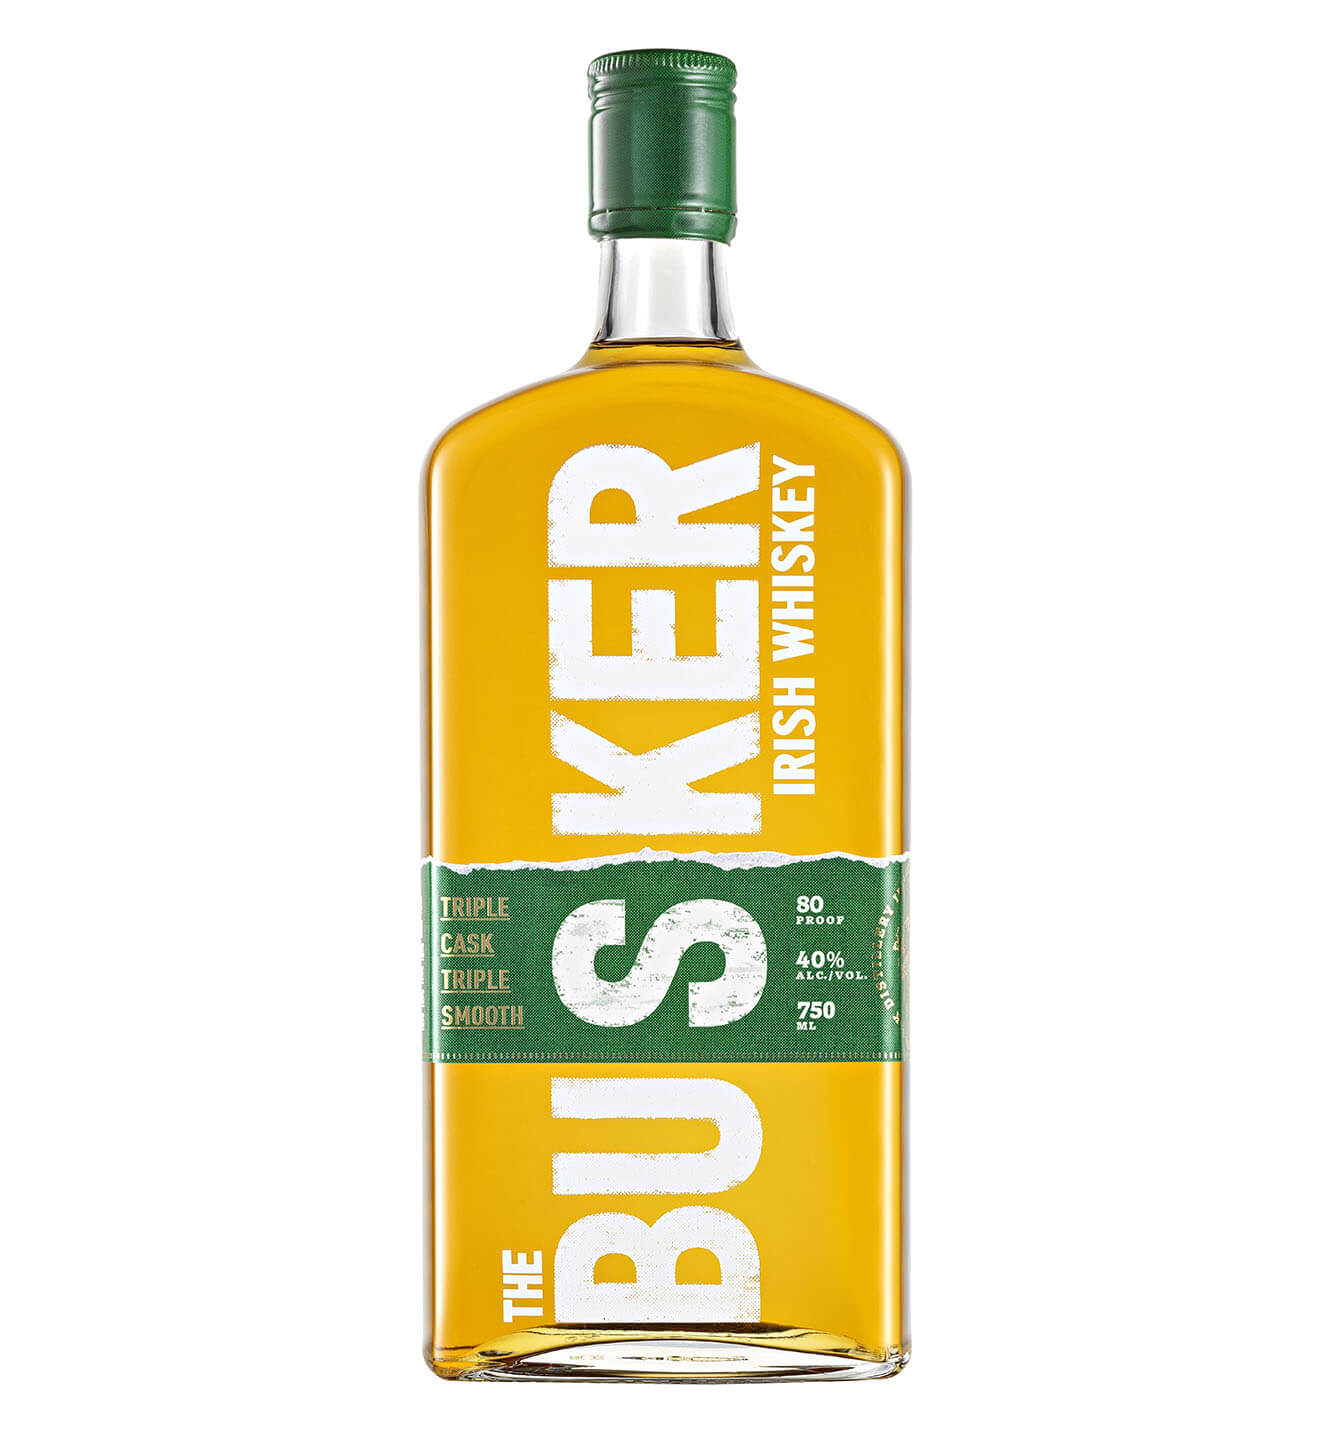 The Busker Irish Whiskey Triple Cask Triple Smooth, bottle on white